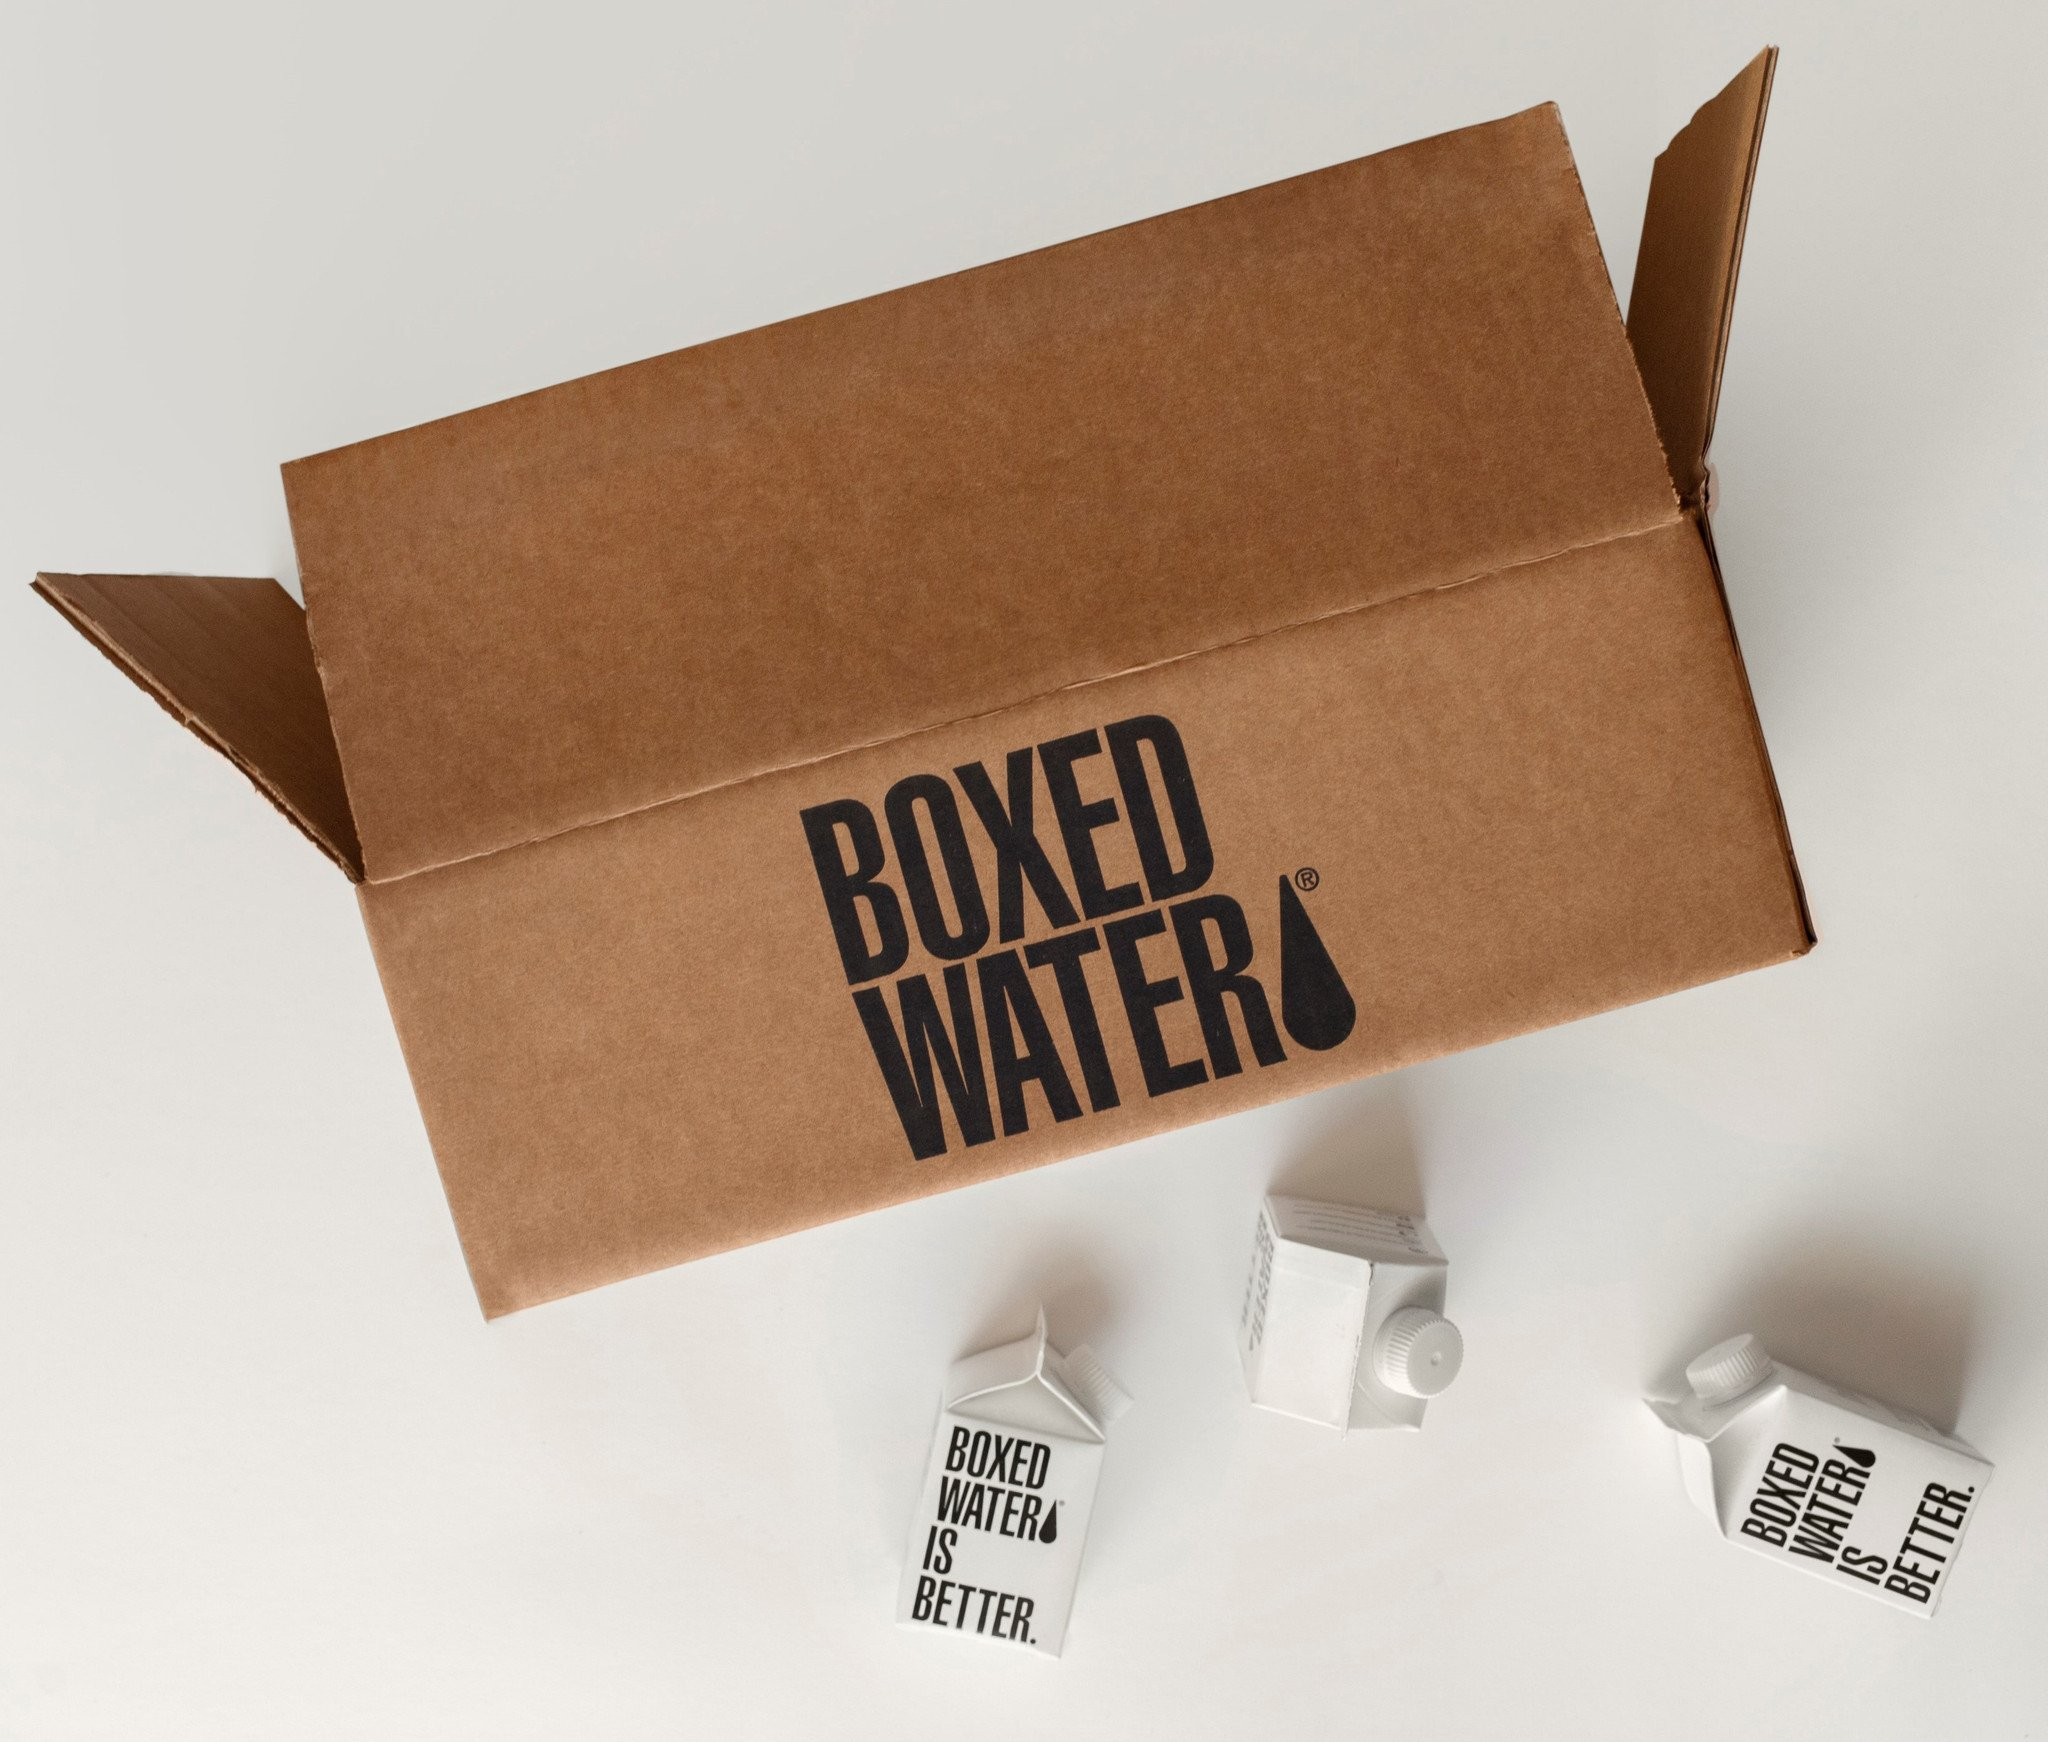 250mL Boxed Water 24 Pack